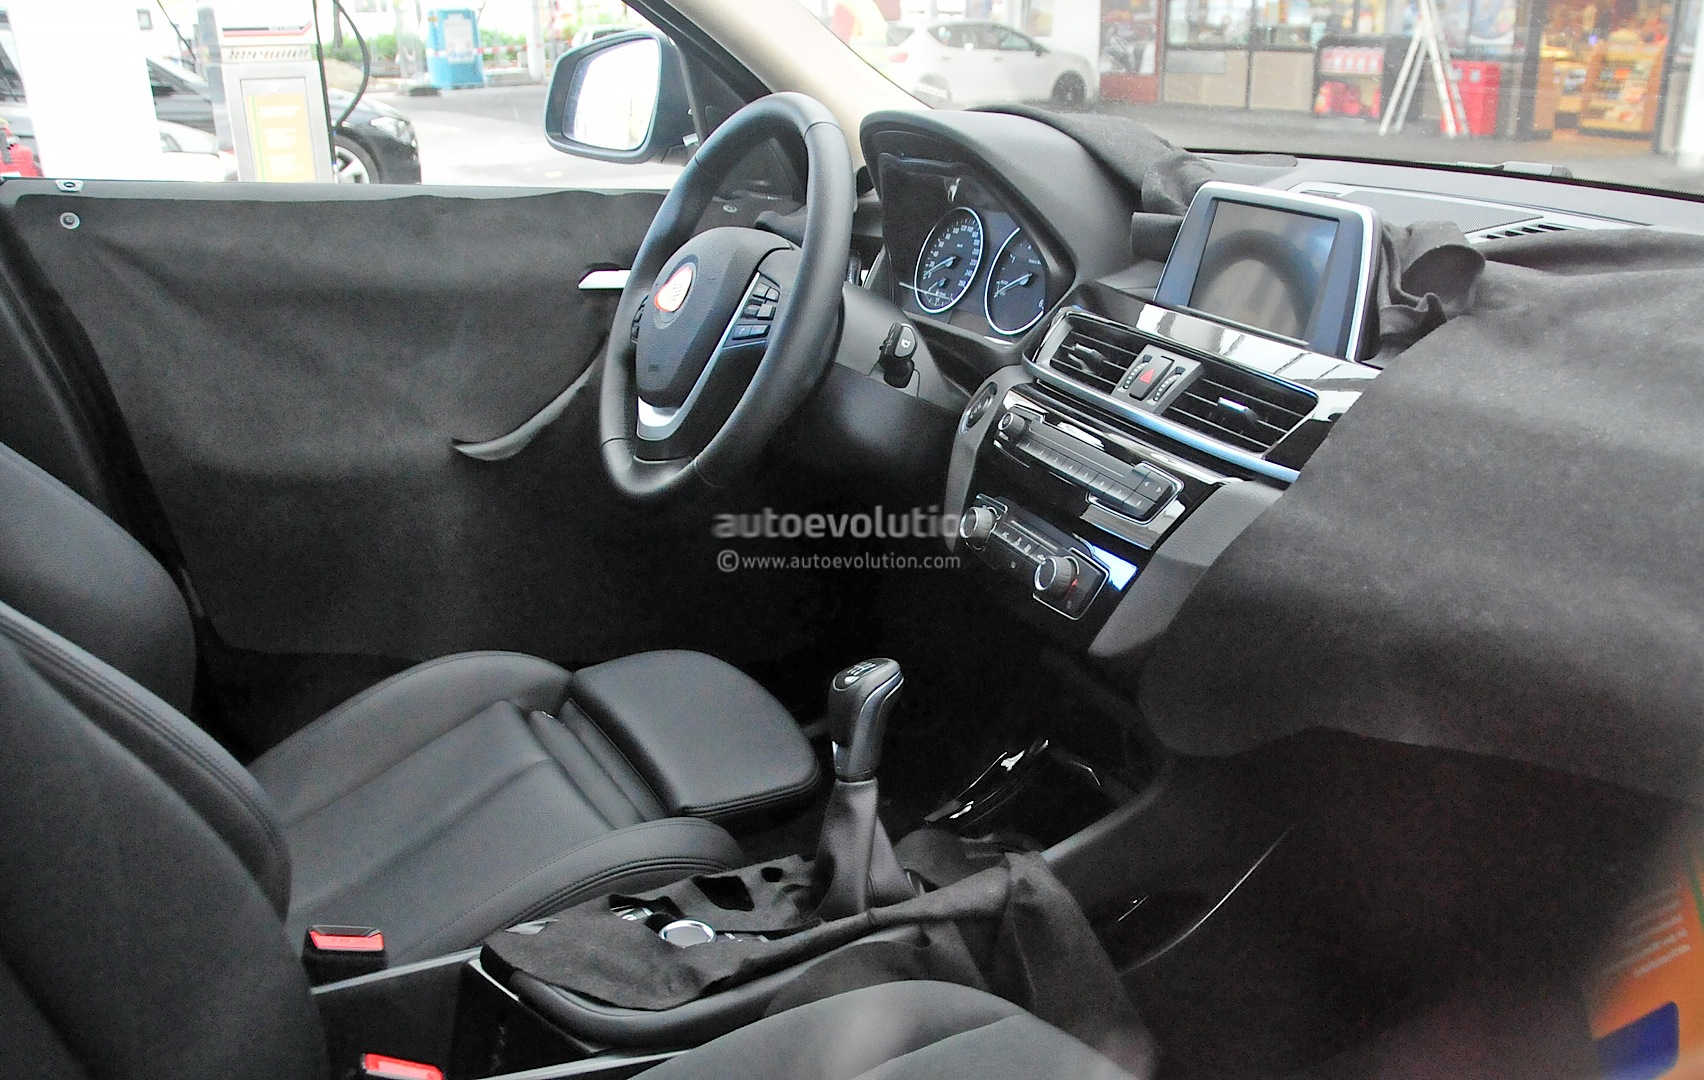 2016 bmw x1 interior revealed in spy photos autoevolution. Black Bedroom Furniture Sets. Home Design Ideas